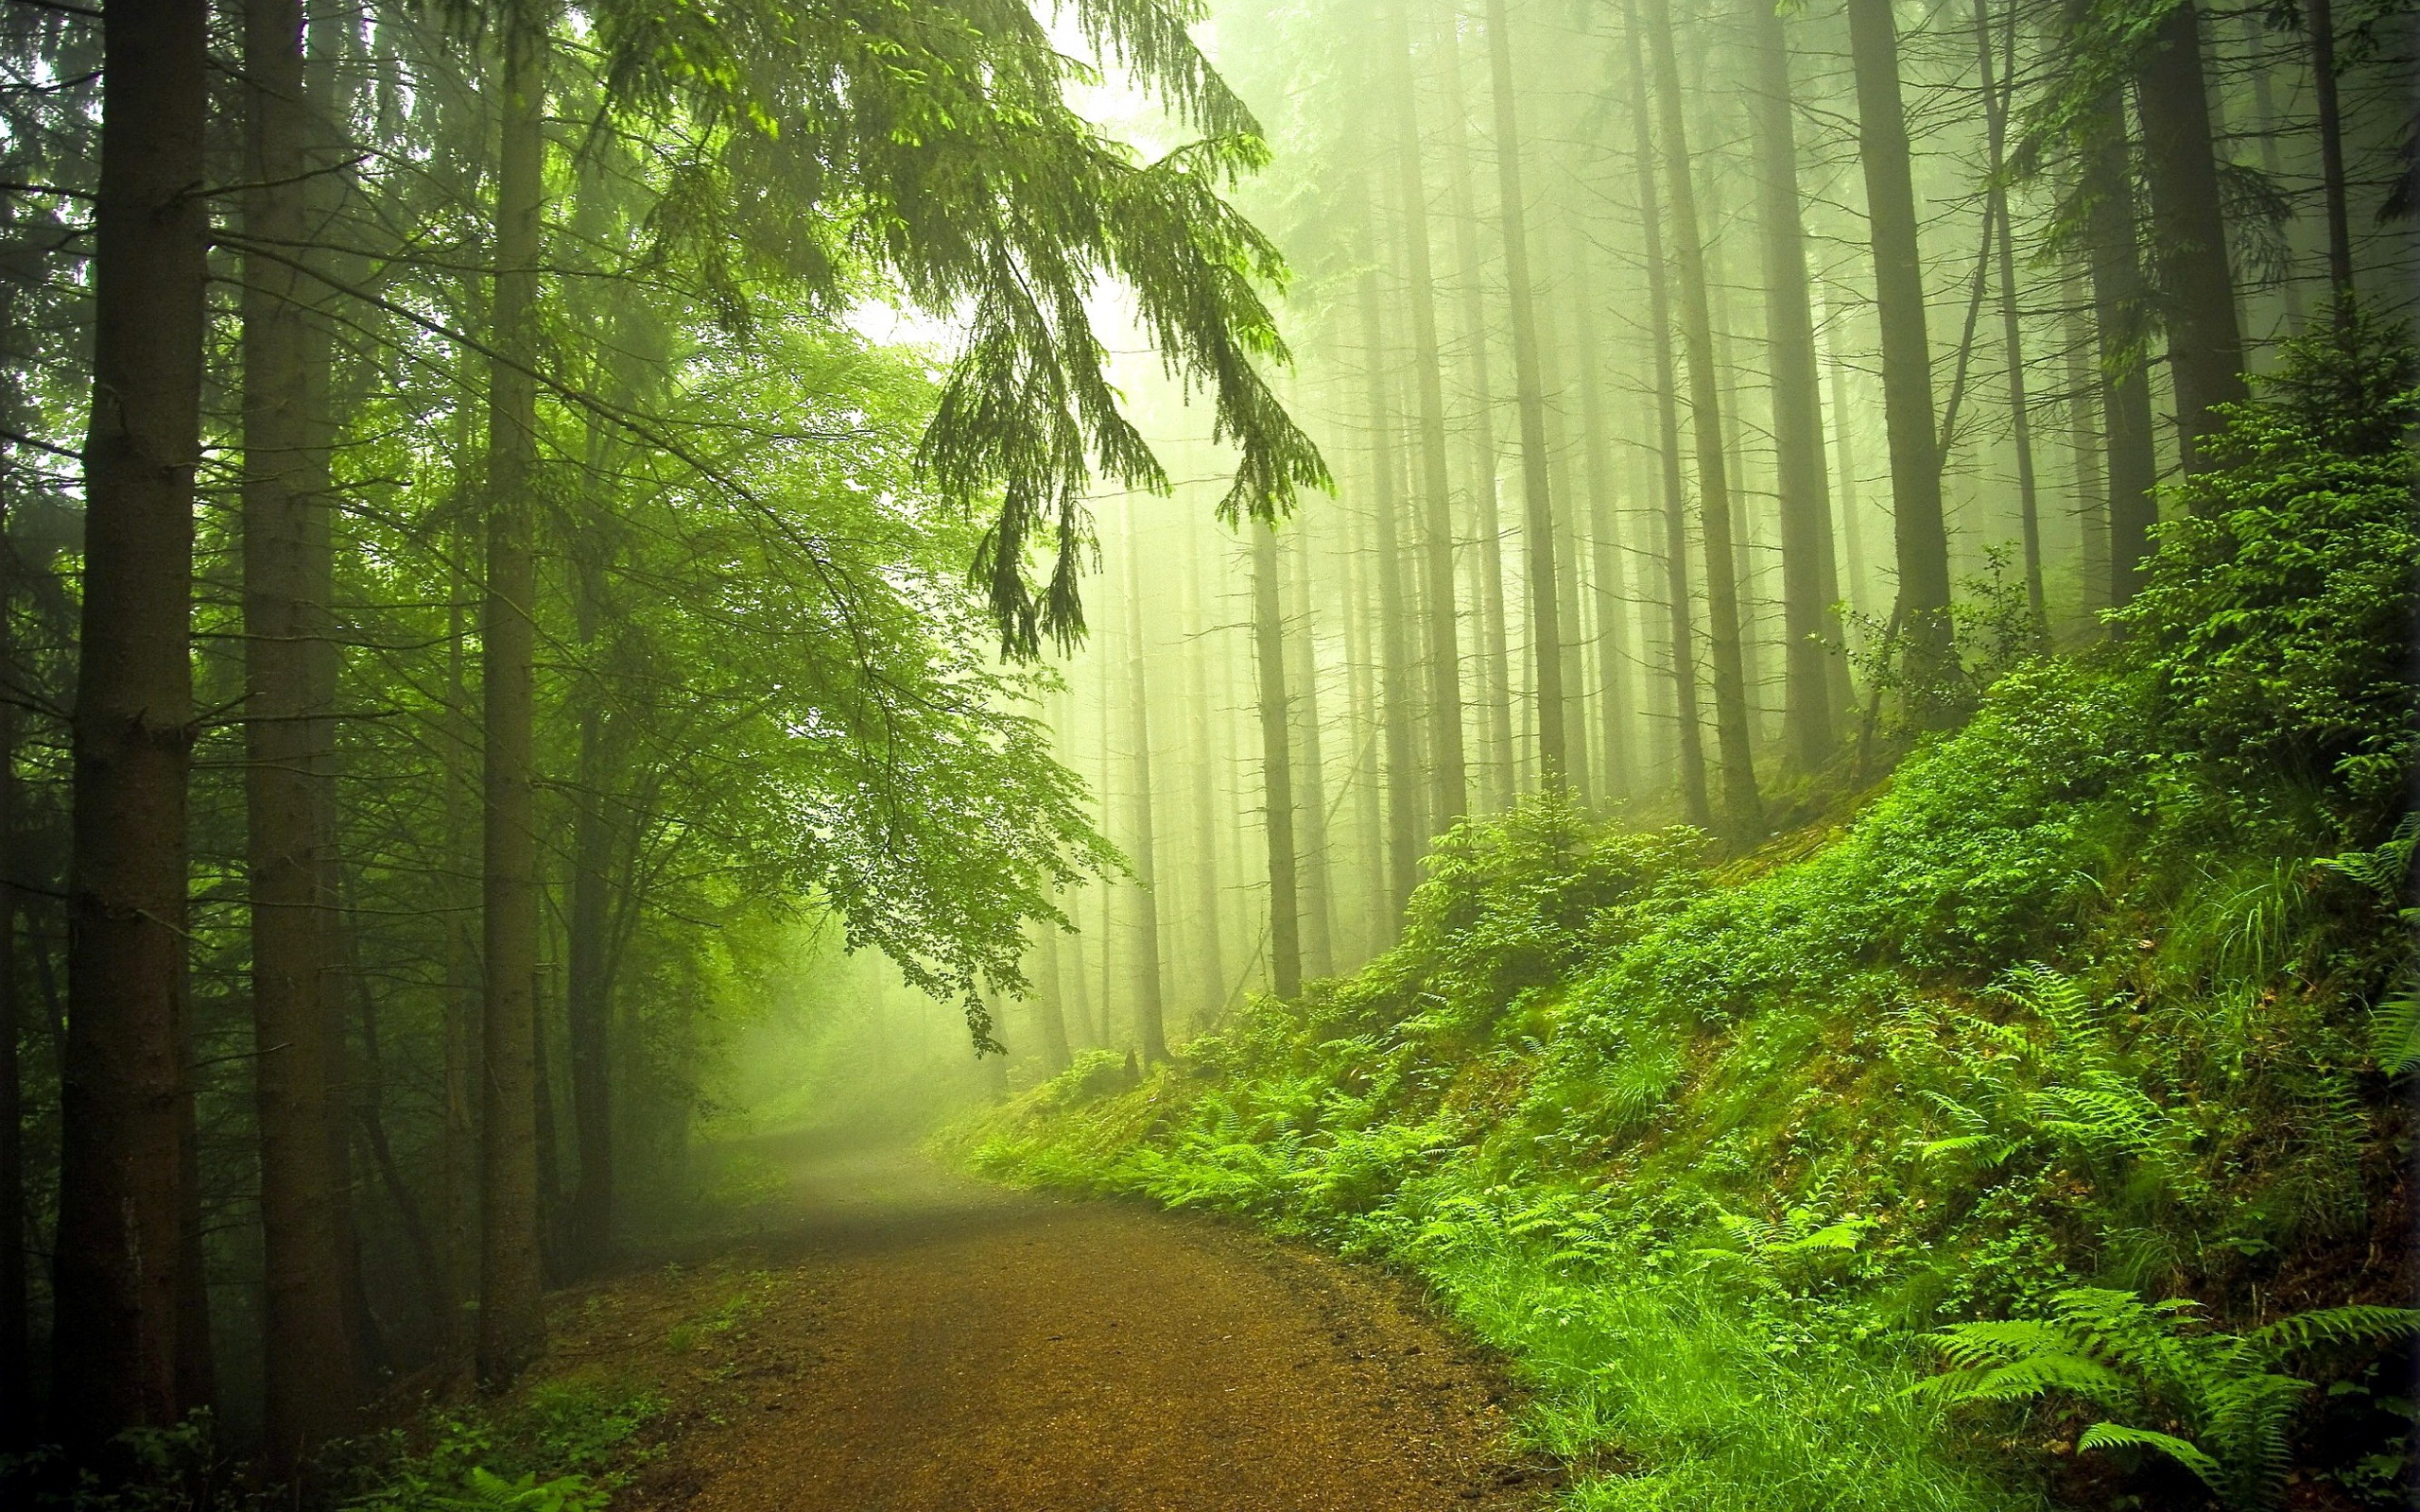 Early morning forest 2560 x 1600 download close